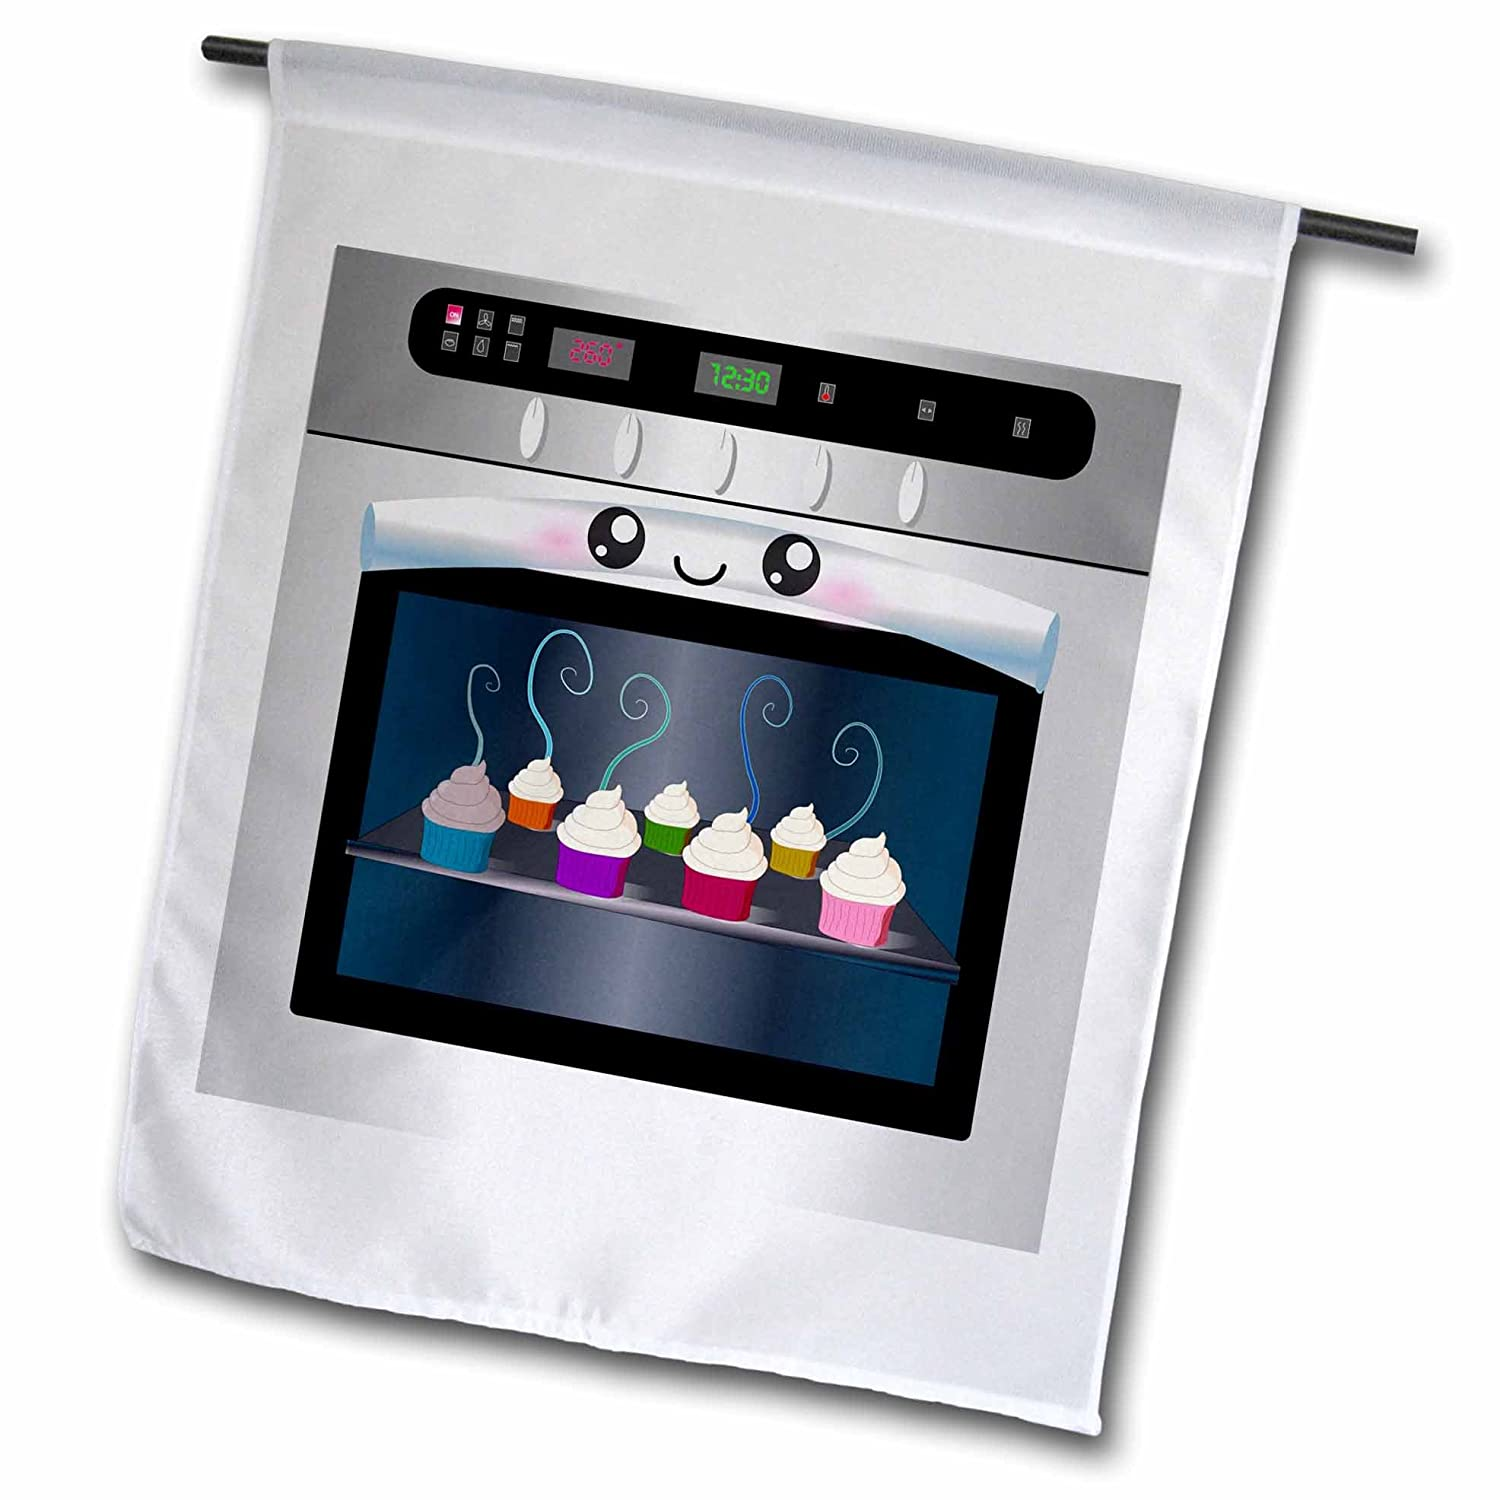 3dRose fl_58309_1 Cute Kawaii Happy Smiling Oven Filled with Baking Cupcakes-for Chefs Foodies and Cooking Fans Garden Flag, 12 by 18-Inch